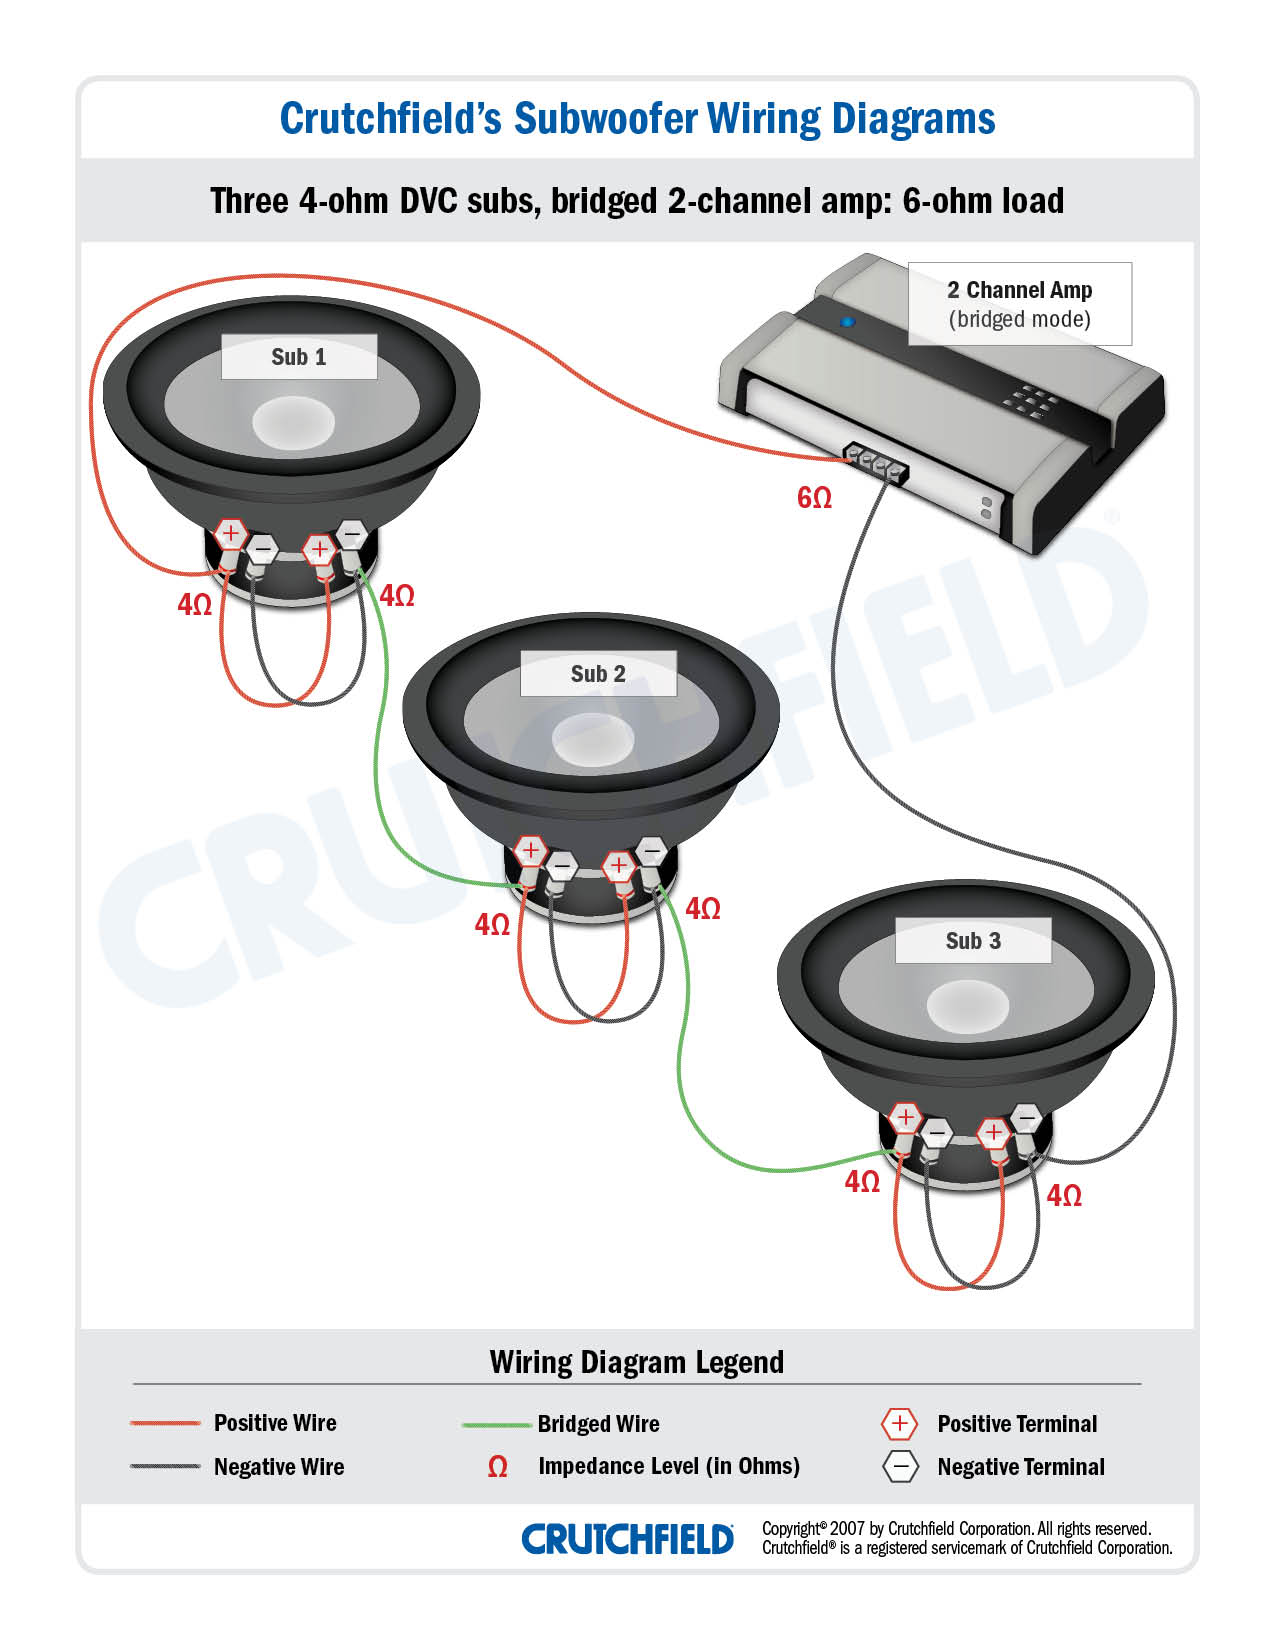 3 DVC 4 ohm 2 ch subwoofer wiring diagrams kicker speaker wiring diagram at reclaimingppi.co